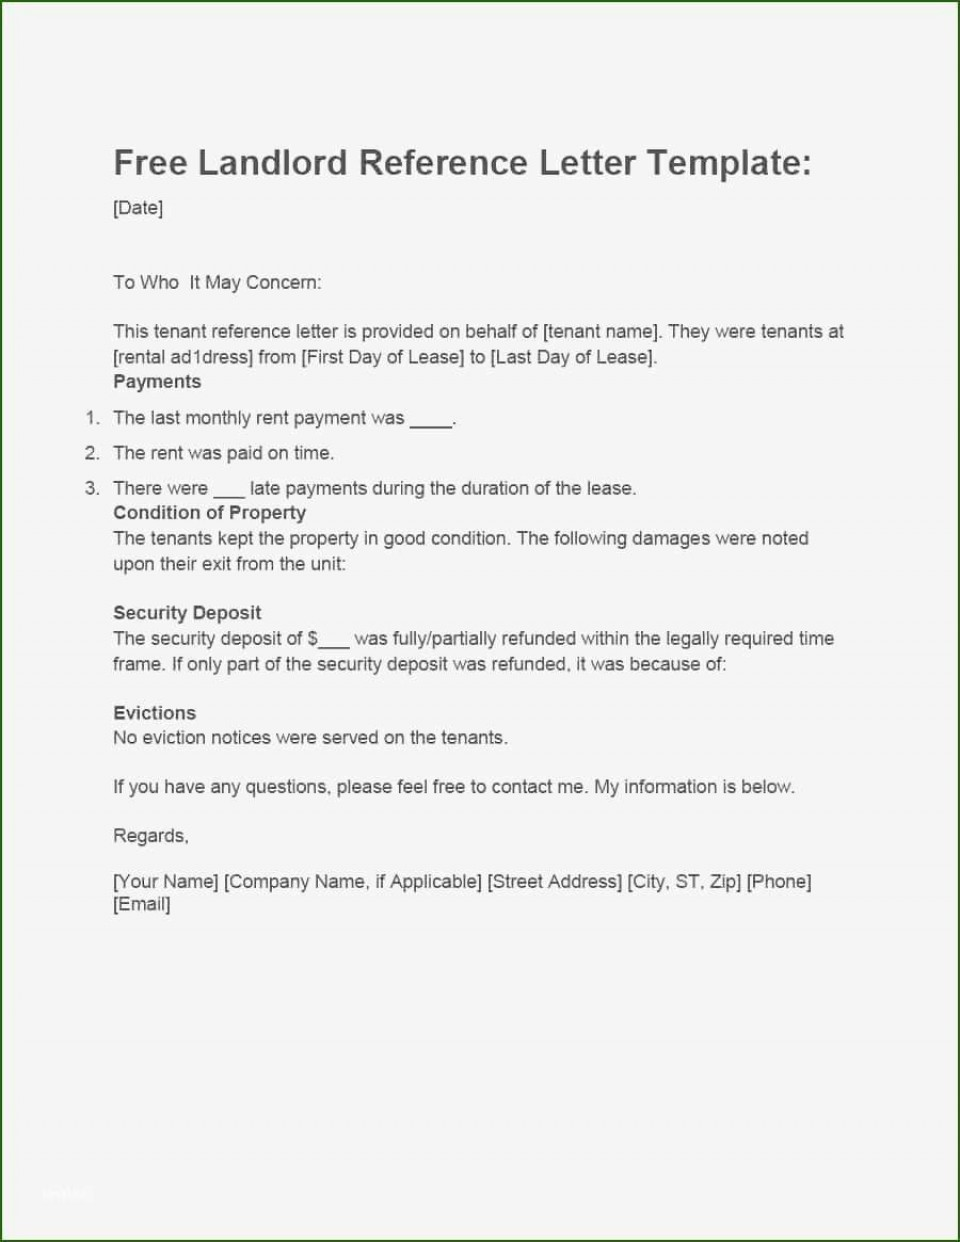 001 Magnificent Free Reference Letter Template For Landlord High Definition  Rental960